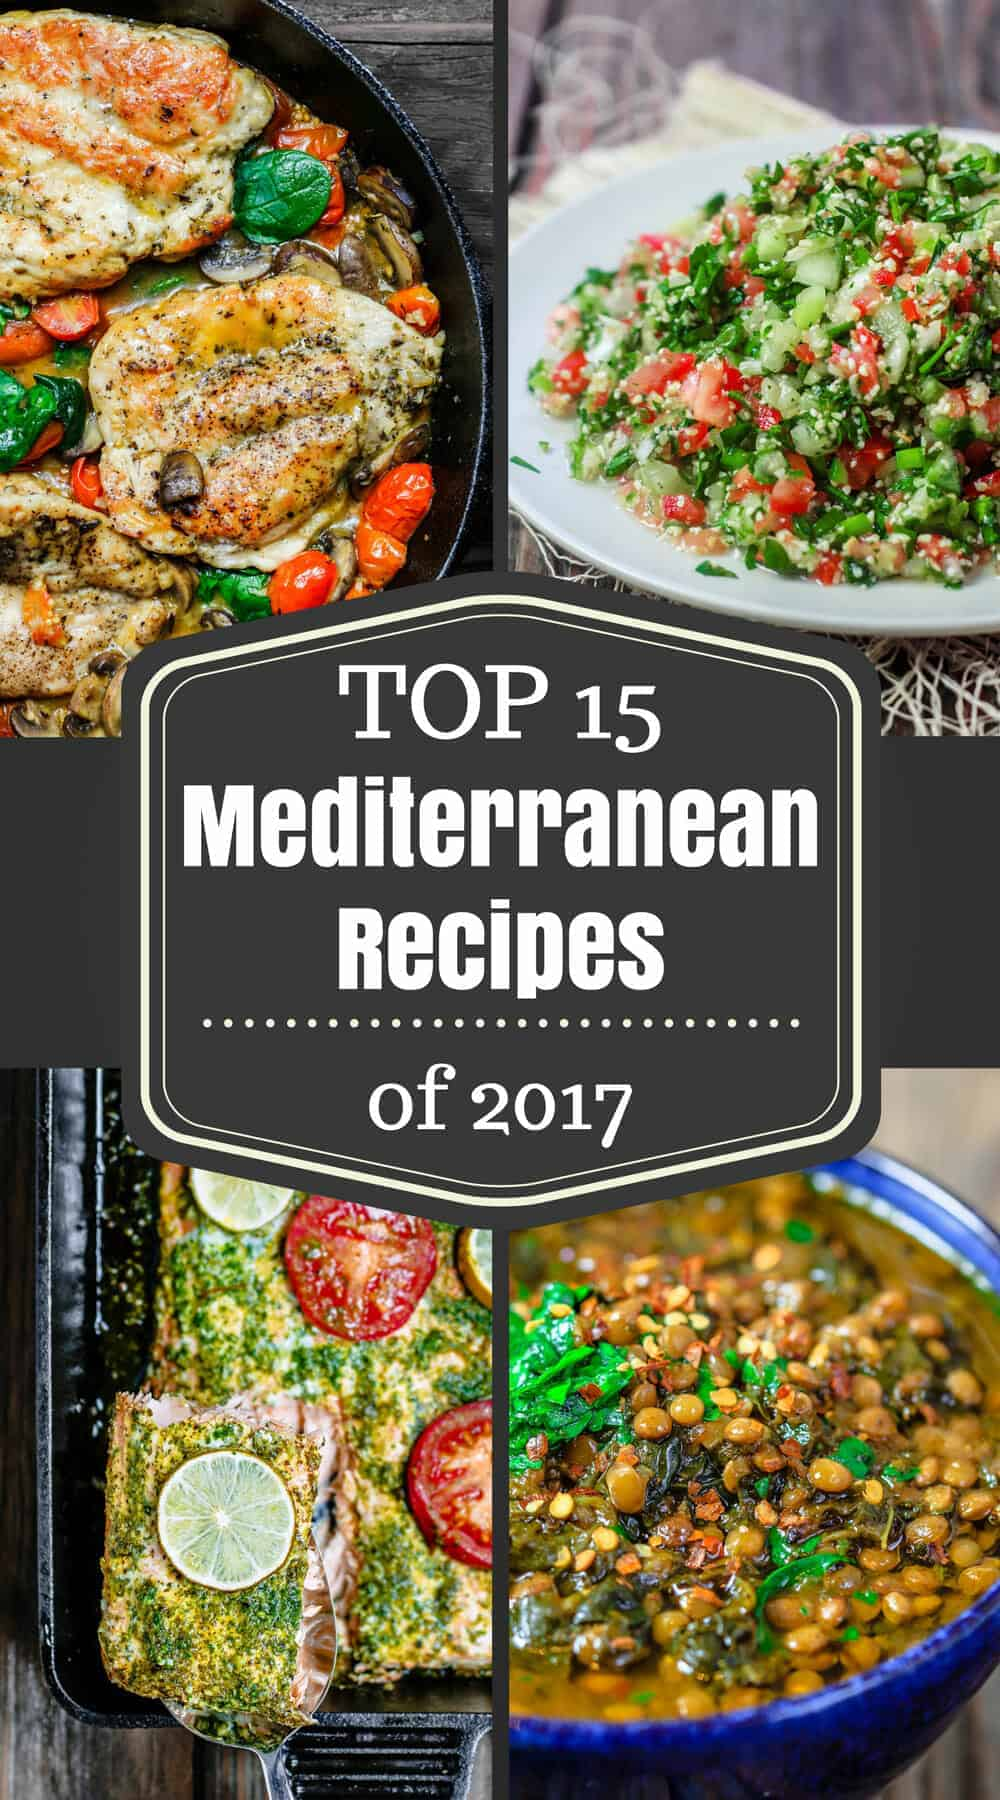 Top 15 Mediterranean Recipes of 2017